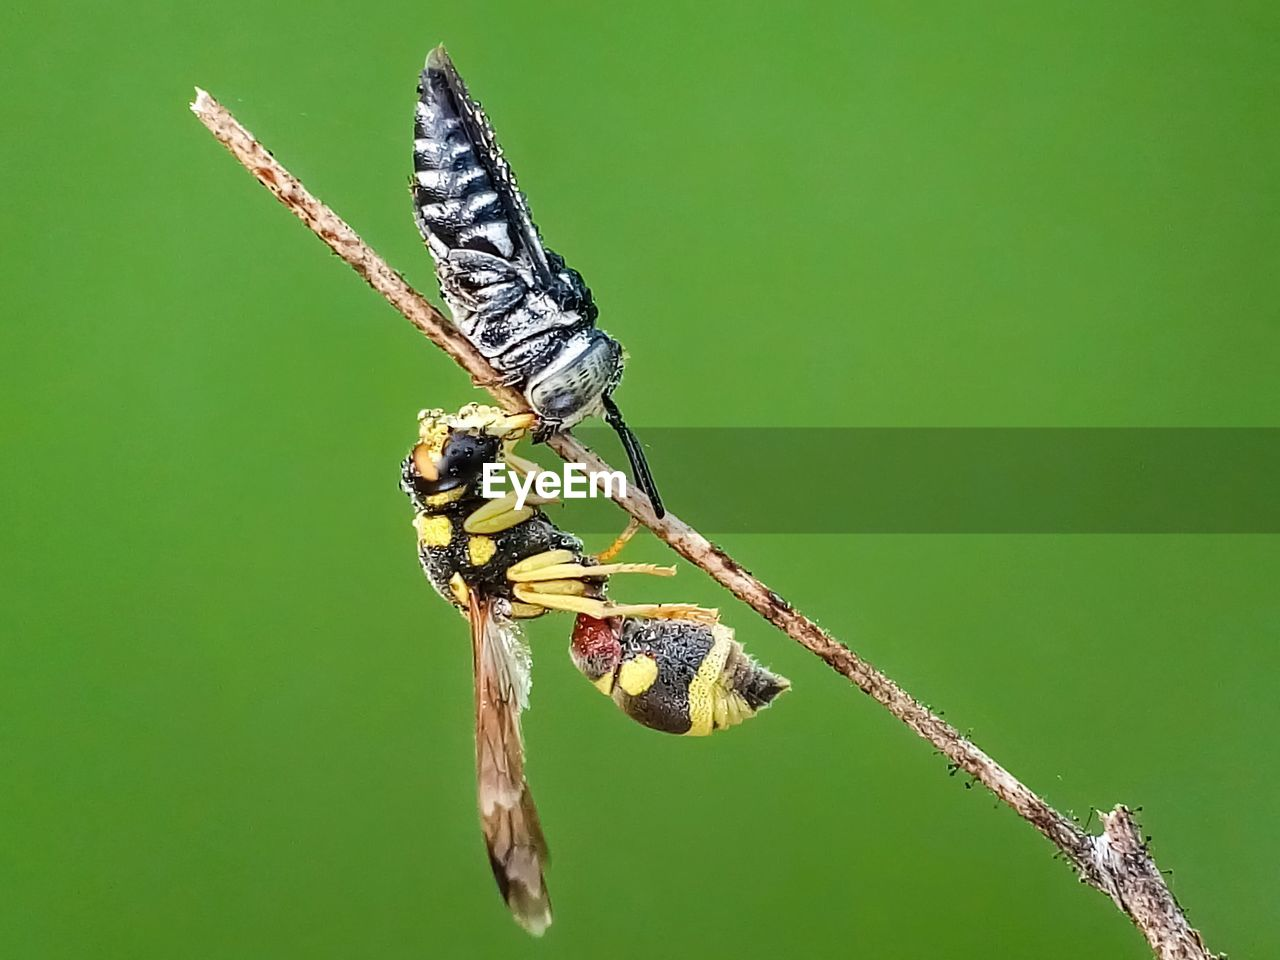 insect, invertebrate, animal wildlife, animals in the wild, animal themes, animal, one animal, animal wing, focus on foreground, plant, close-up, nature, beauty in nature, no people, day, twig, outdoors, butterfly - insect